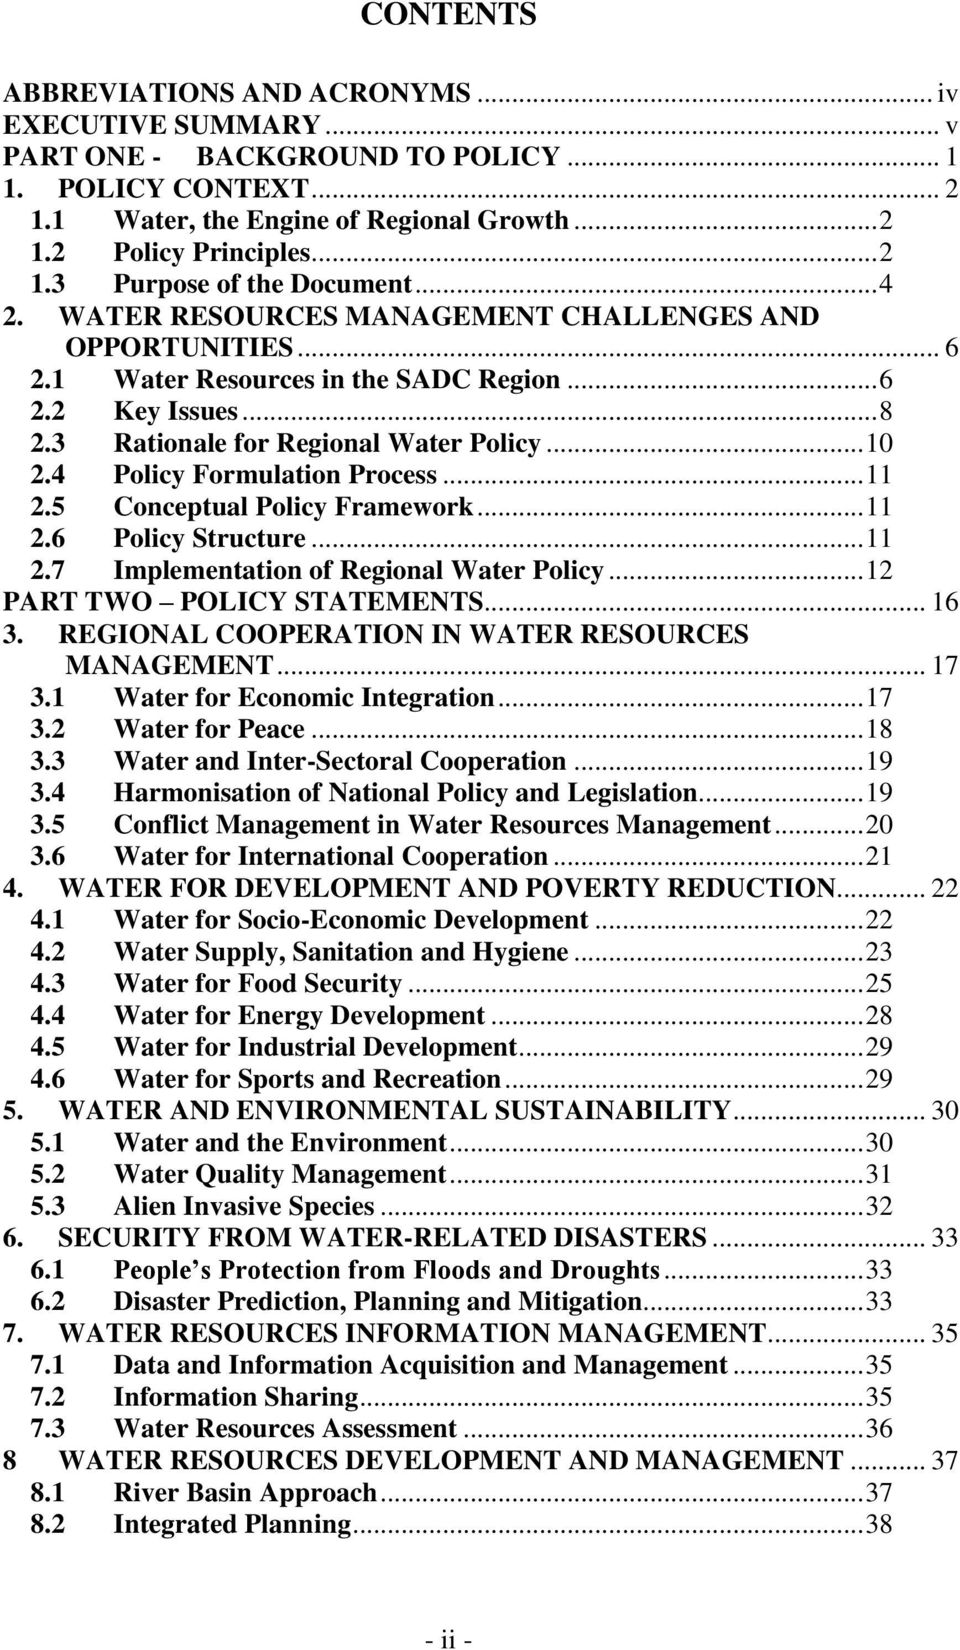 4 Policy Formulation Process... 11 2.5 Conceptual Policy Framework... 11 2.6 Policy Structure... 11 2.7 Implementation of Regional Water Policy... 12 PART TWO POLICY STATEMENTS... 16 3.